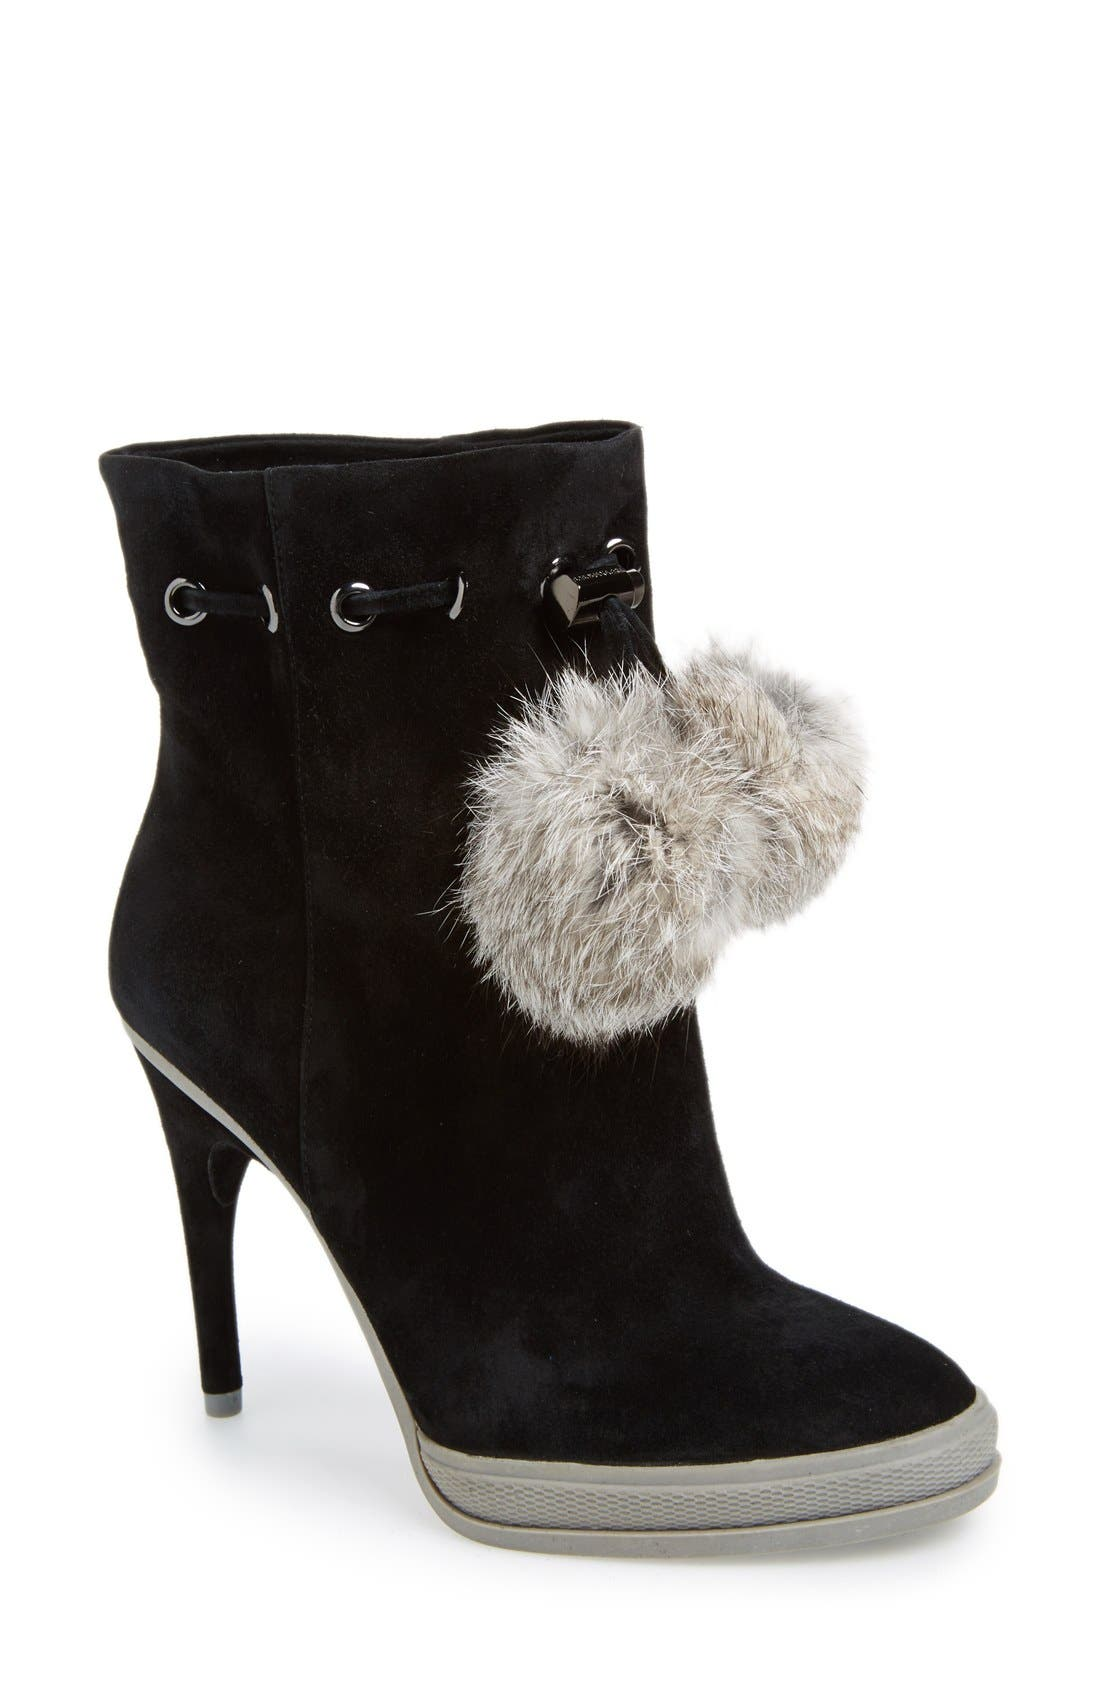 Alternate Image 1 Selected - BCBGMAXAZRIA 'Perry' Ankle Bootie (Women)